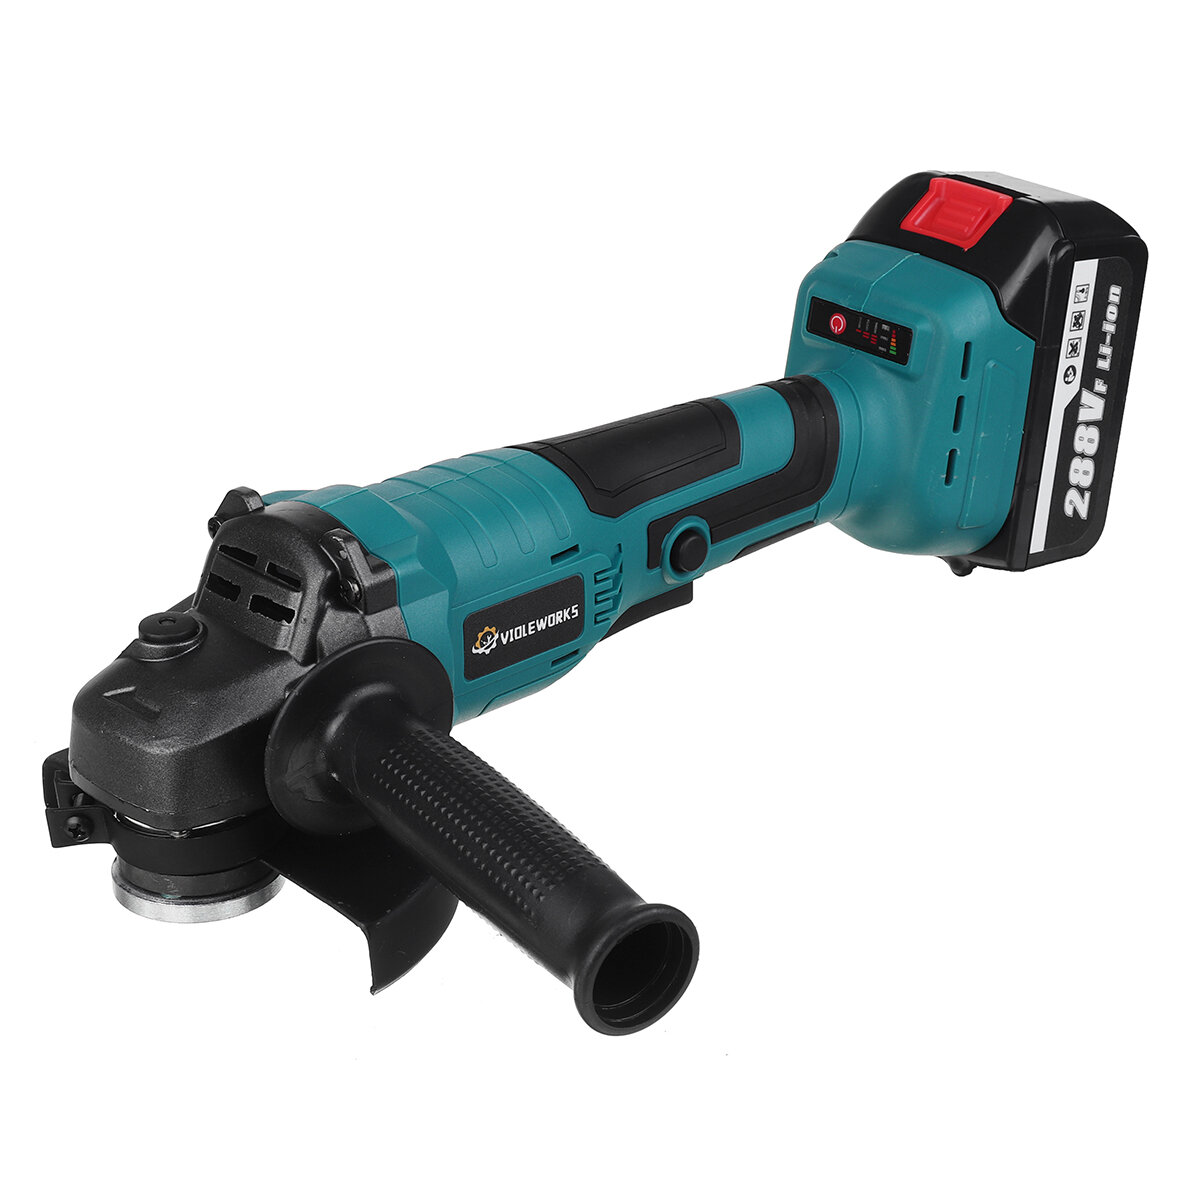 VIOLEWORKS 288VF Cordless Angle Grinder 3 Gears Brushless Electric 100mm/125mm Polishing Machine W/ 1pc or 2pcs Battery For Makita